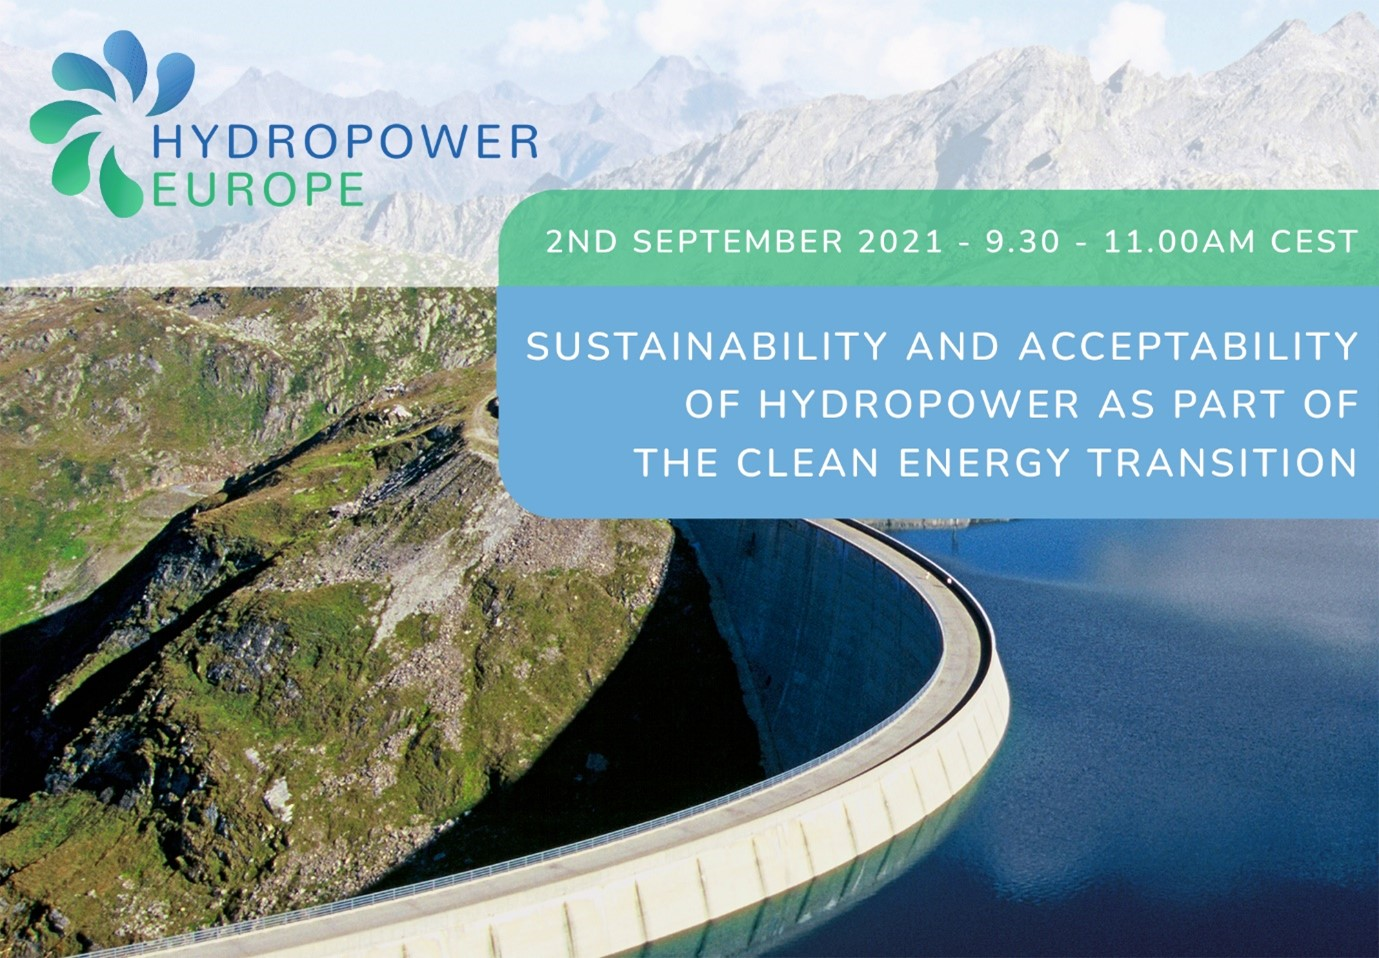 EERA JP HYDRO & HYDROPOWER EUROPE Joint Event